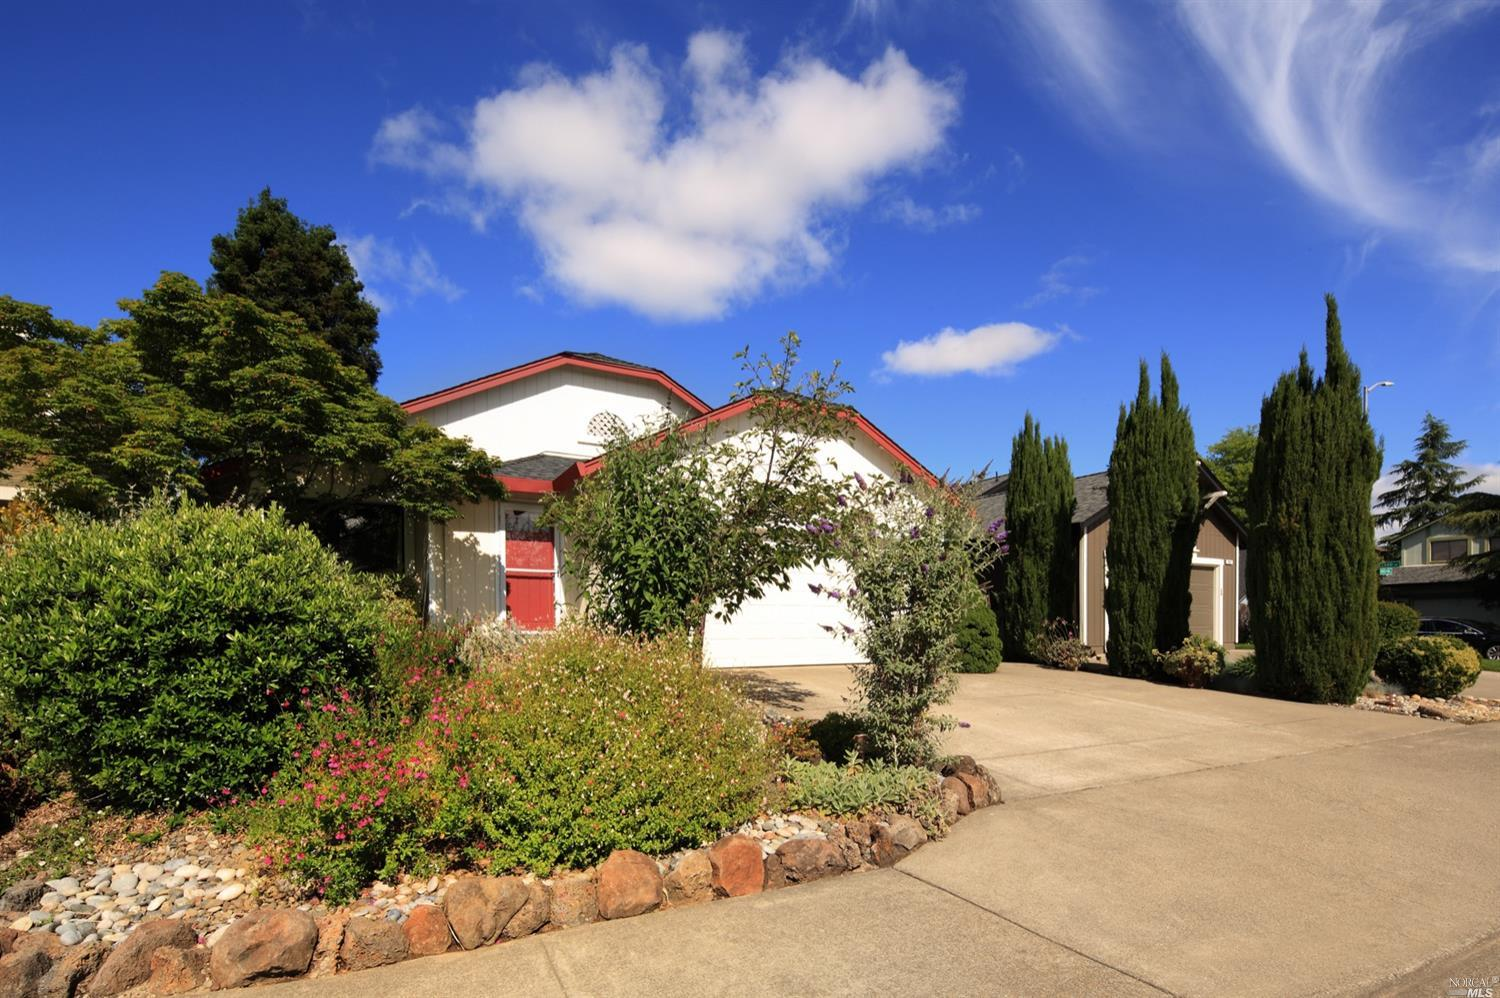 Sweet single level three bedroom two bath home on quiet cul-de-sac in desirable east Windsor. Loving